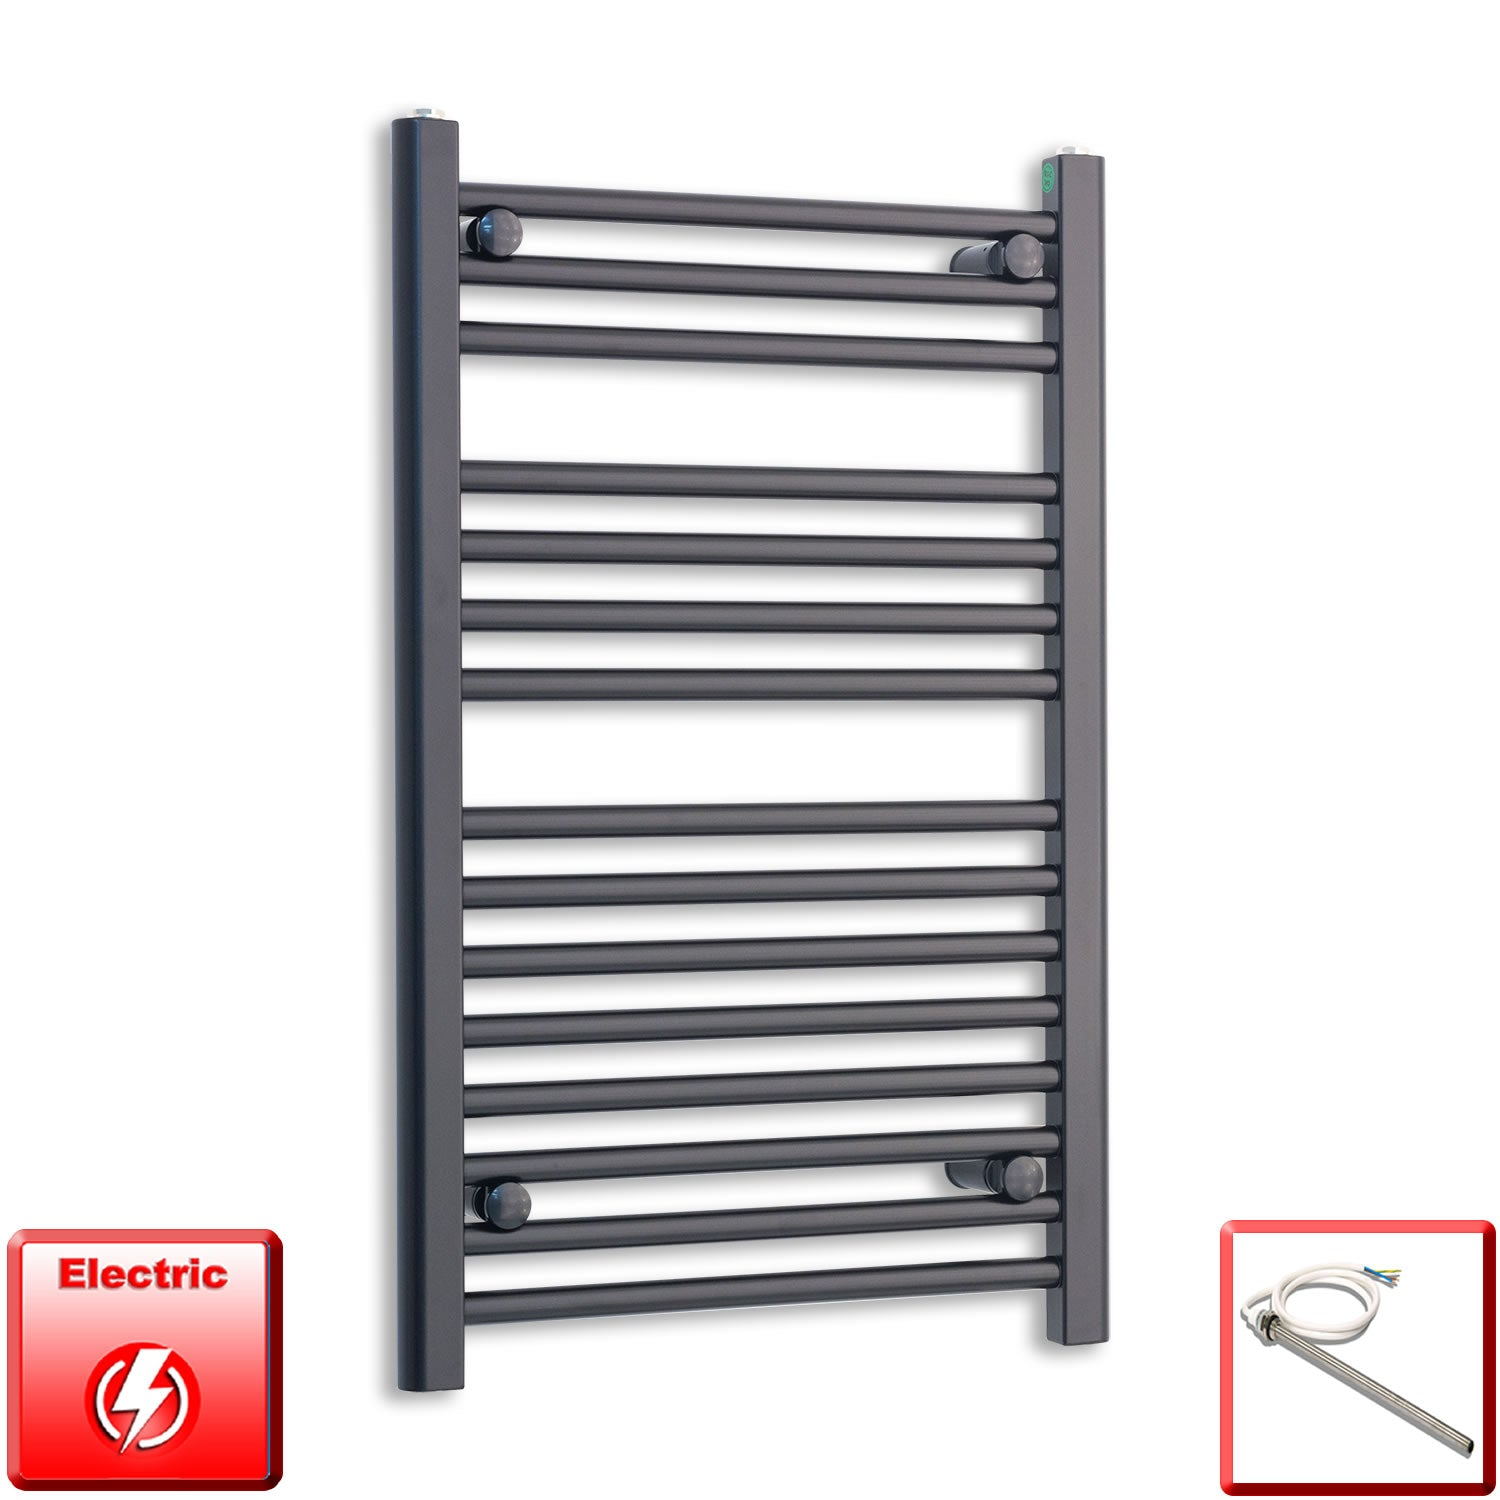 600mm Wide 800mm High Pre-Filled Black Electric Towel Rail Radiator With Single Heat Element